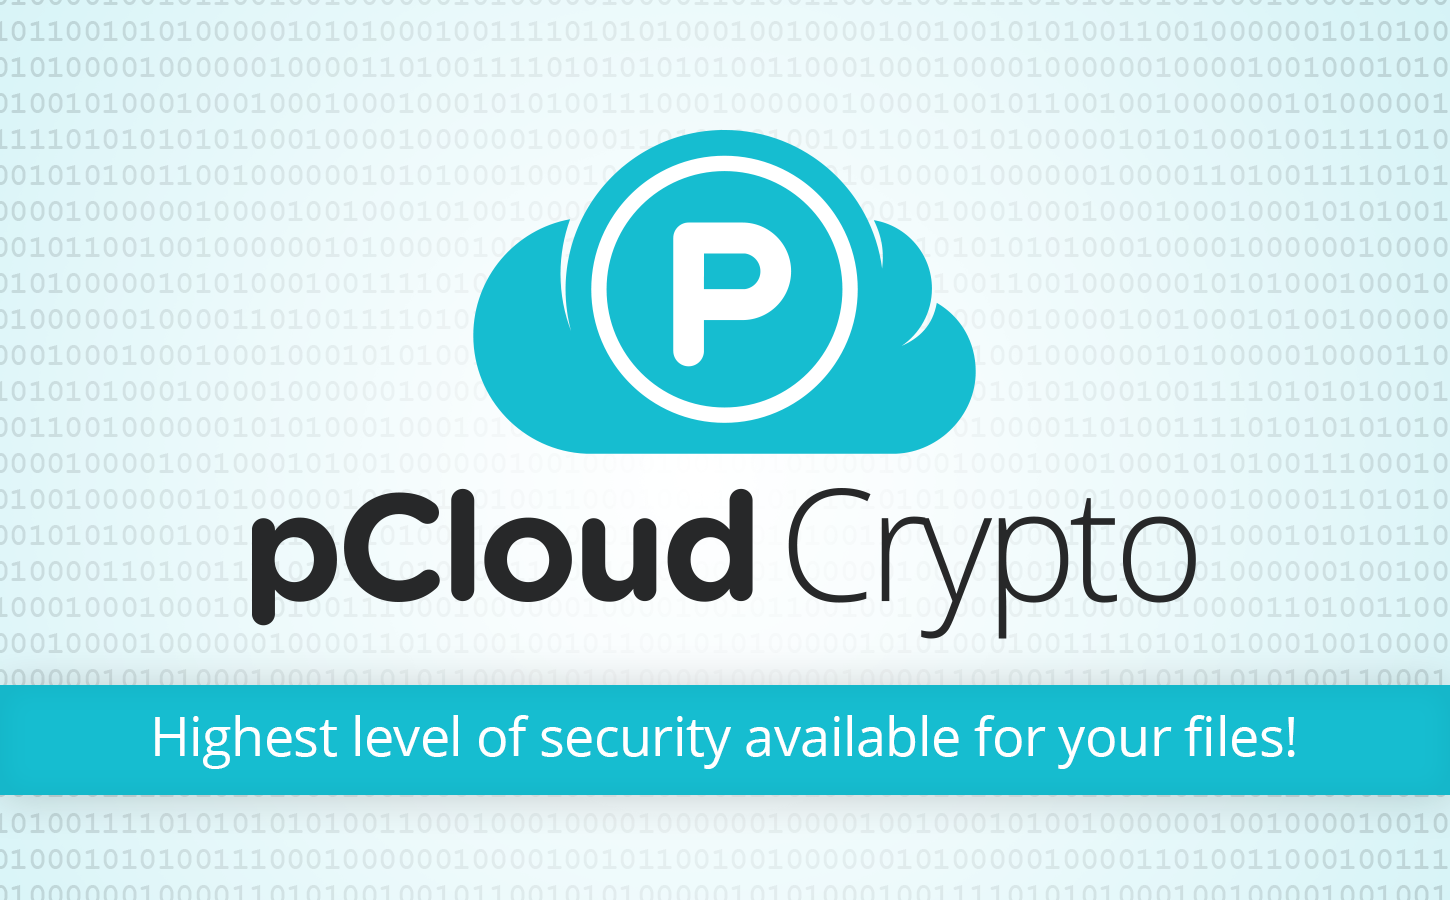 pCloud Crypto - Highest level of security available for your files!